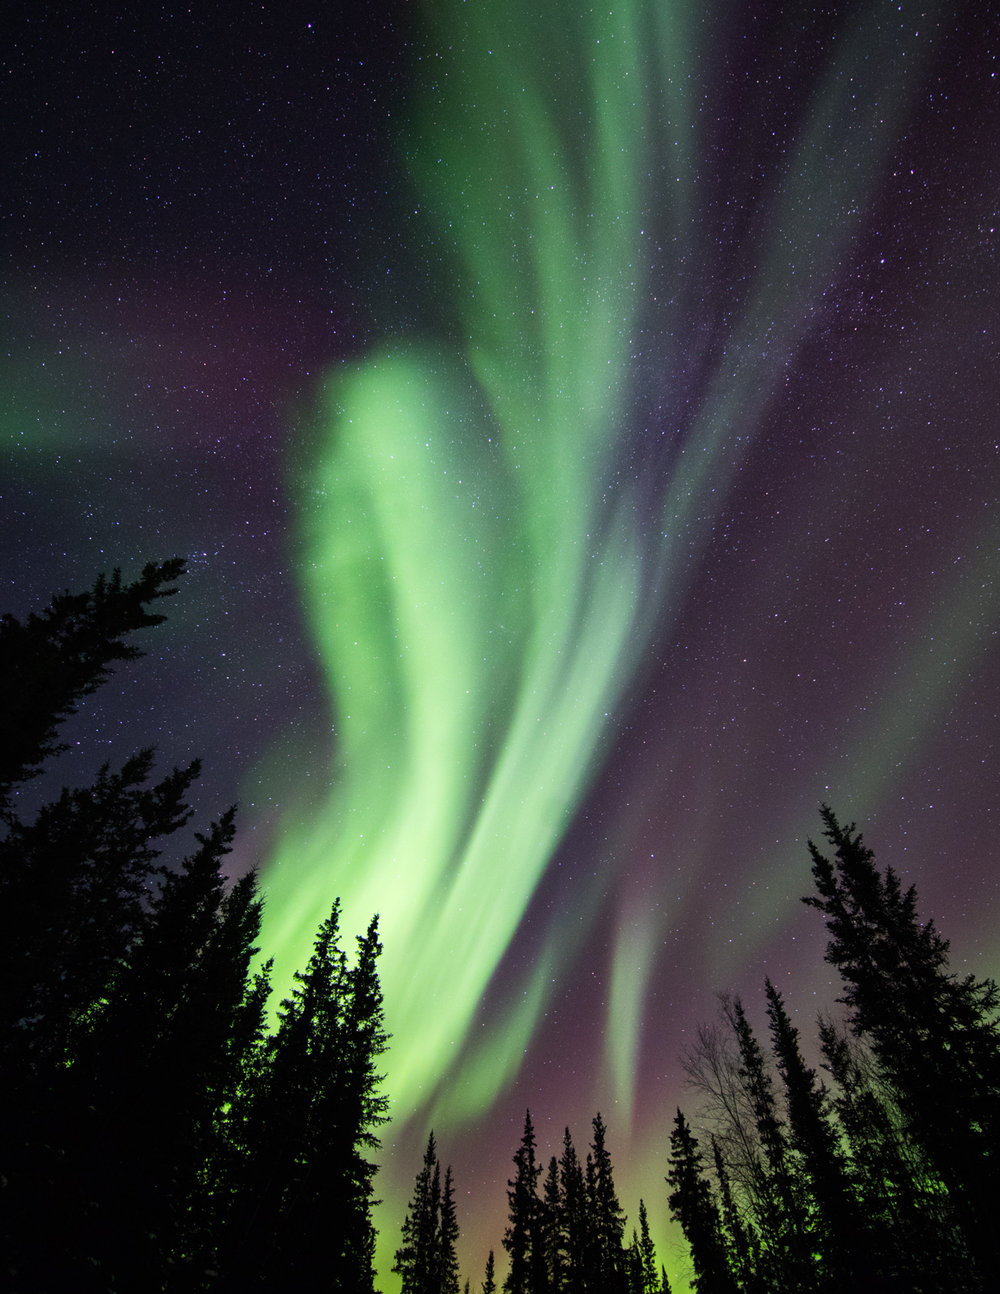 Vertical Aurora With Tree Silhouettes